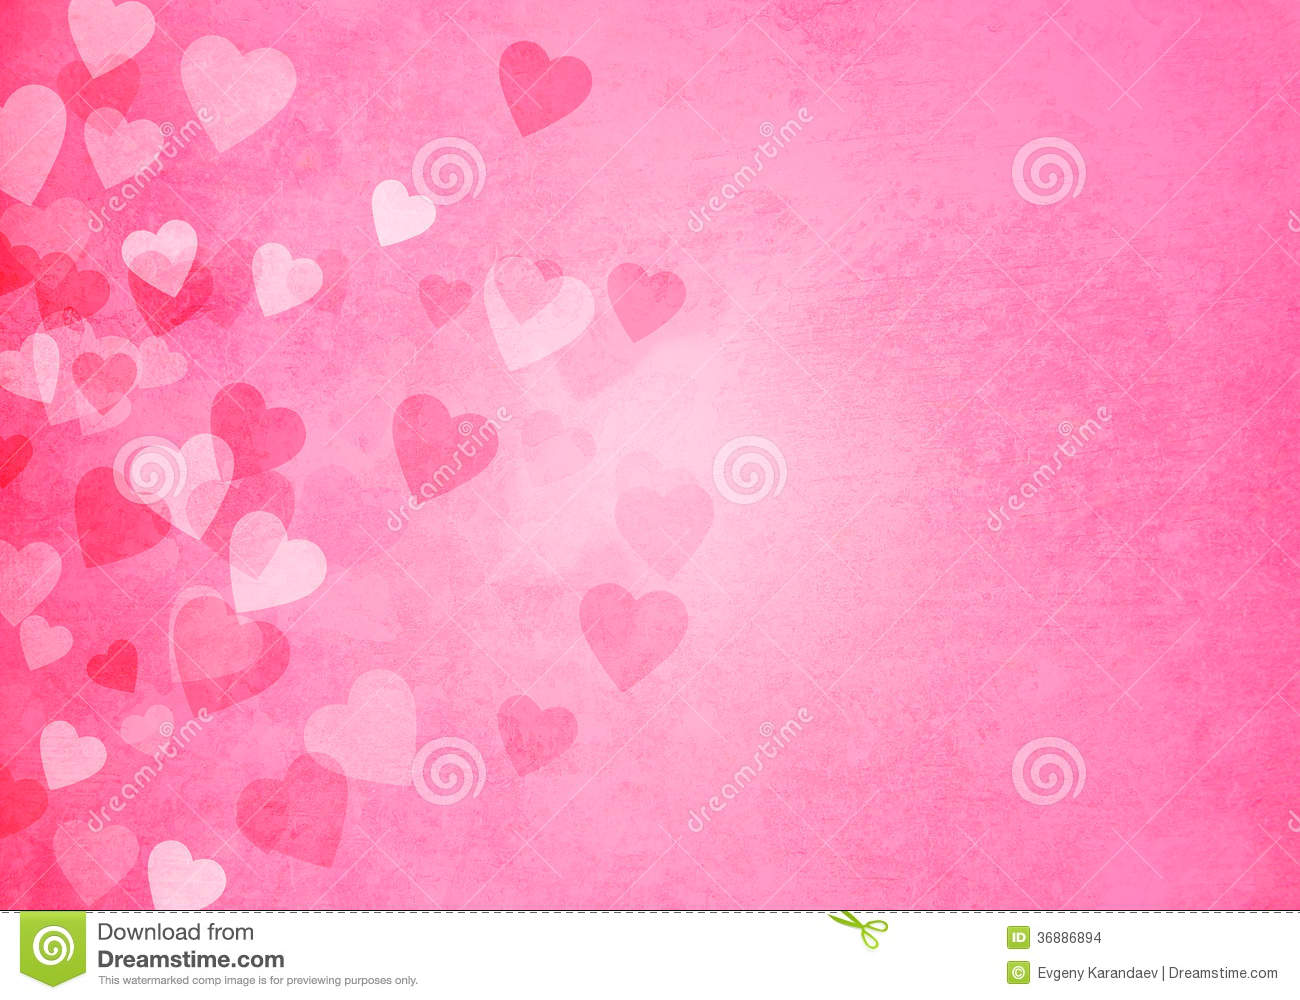 valentines day pink hearts background stock illustration